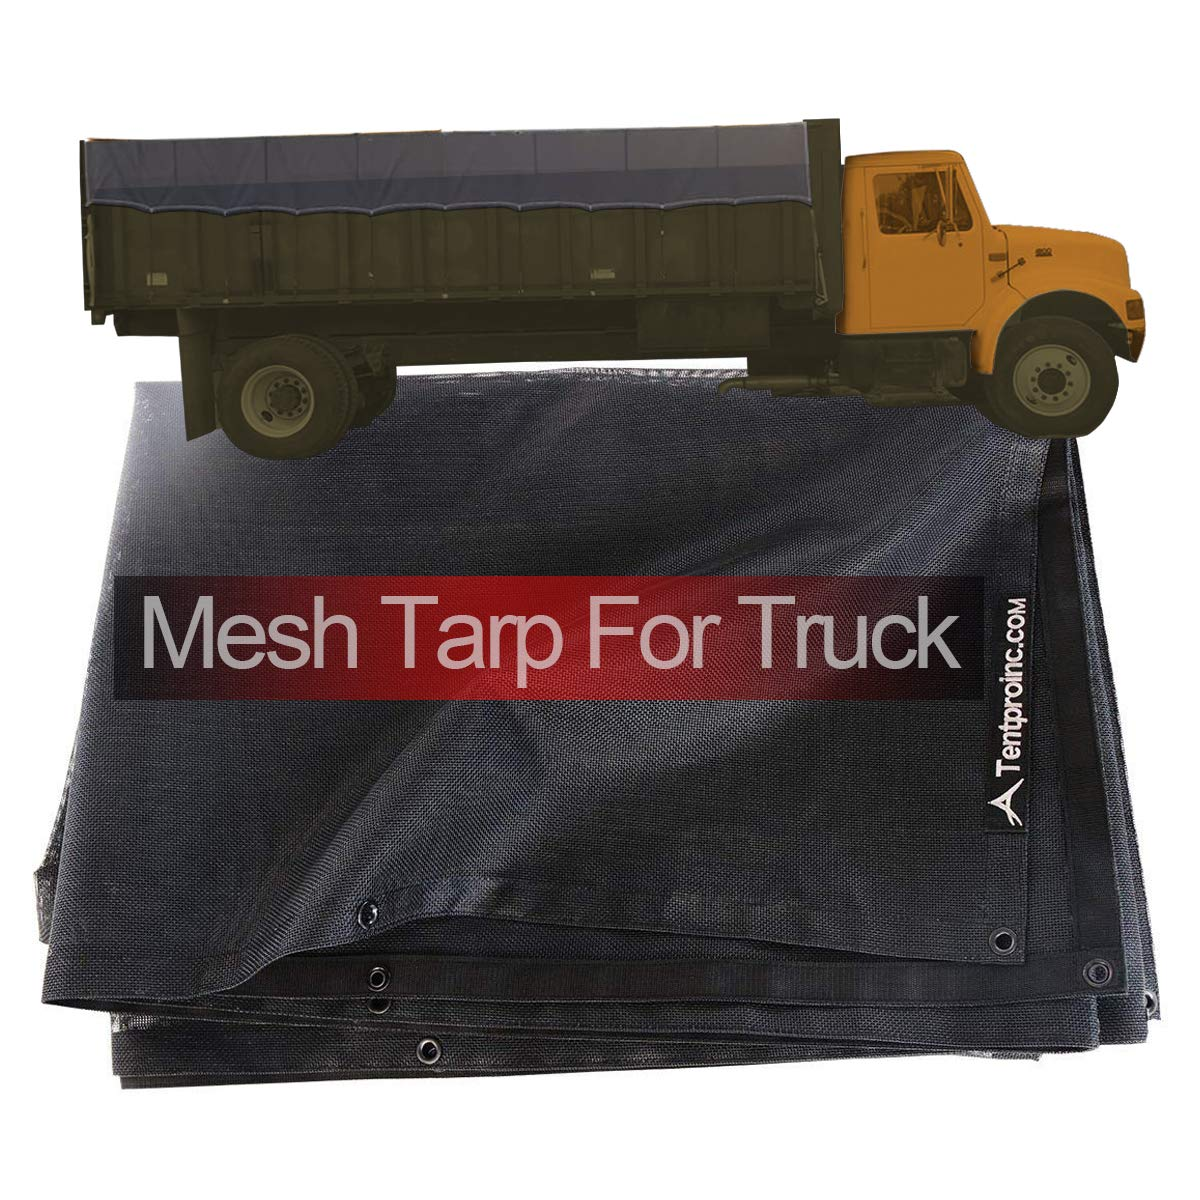 Truck Mesh Tarp 8'X18' (Black) Tentproinc Heavy Duty Cover Top Quality Reinforced Double Needle Stitch Webbing Ripping and Tearing Stop, No Rust Thicker Brass Grommets - 3 Years Limited Warranty by Tentproinc